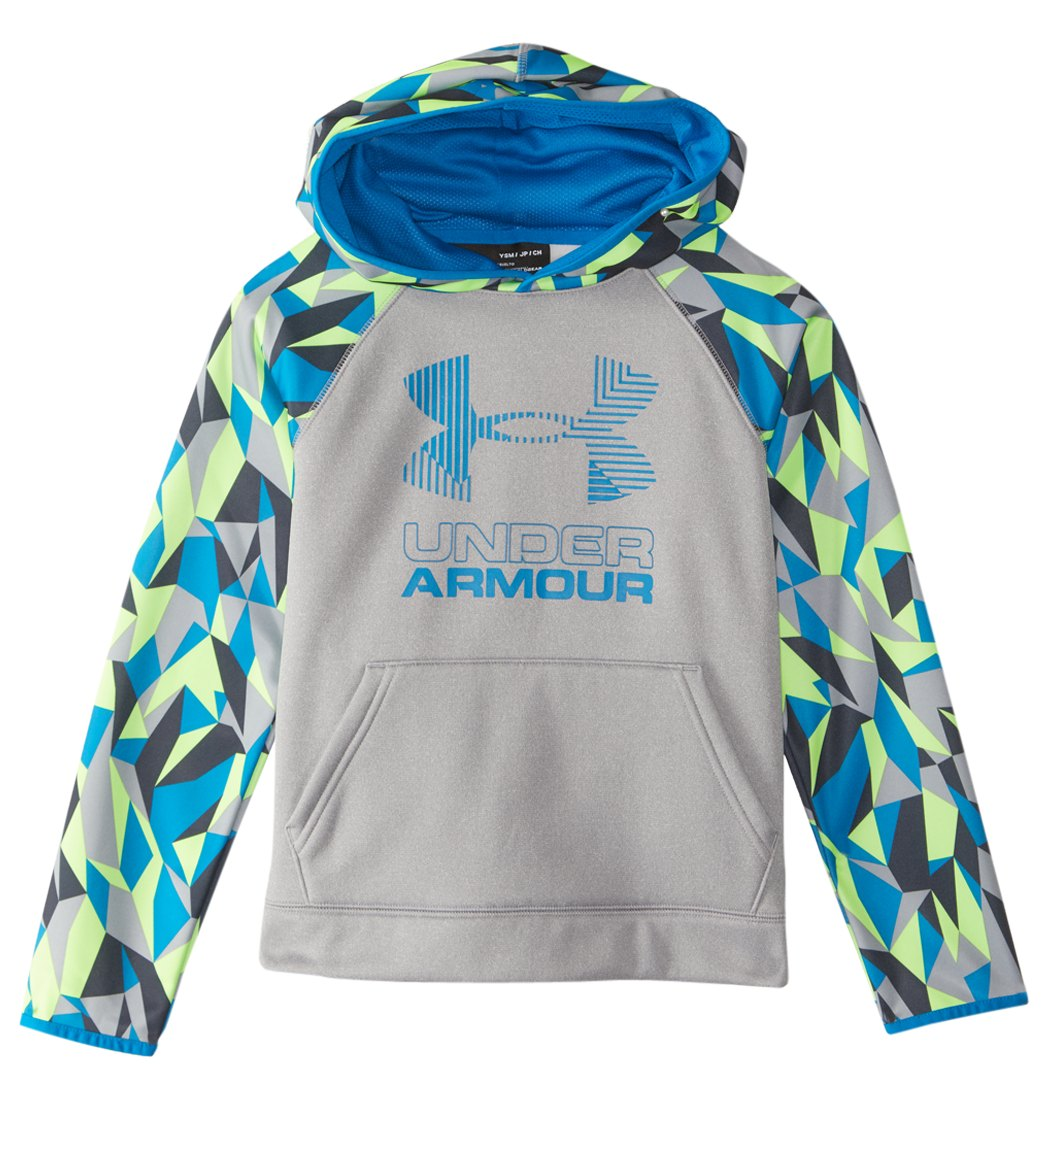 182ca640 Under Armour Boys' SG AF Nov. Big Logo Hoody at SwimOutlet.com